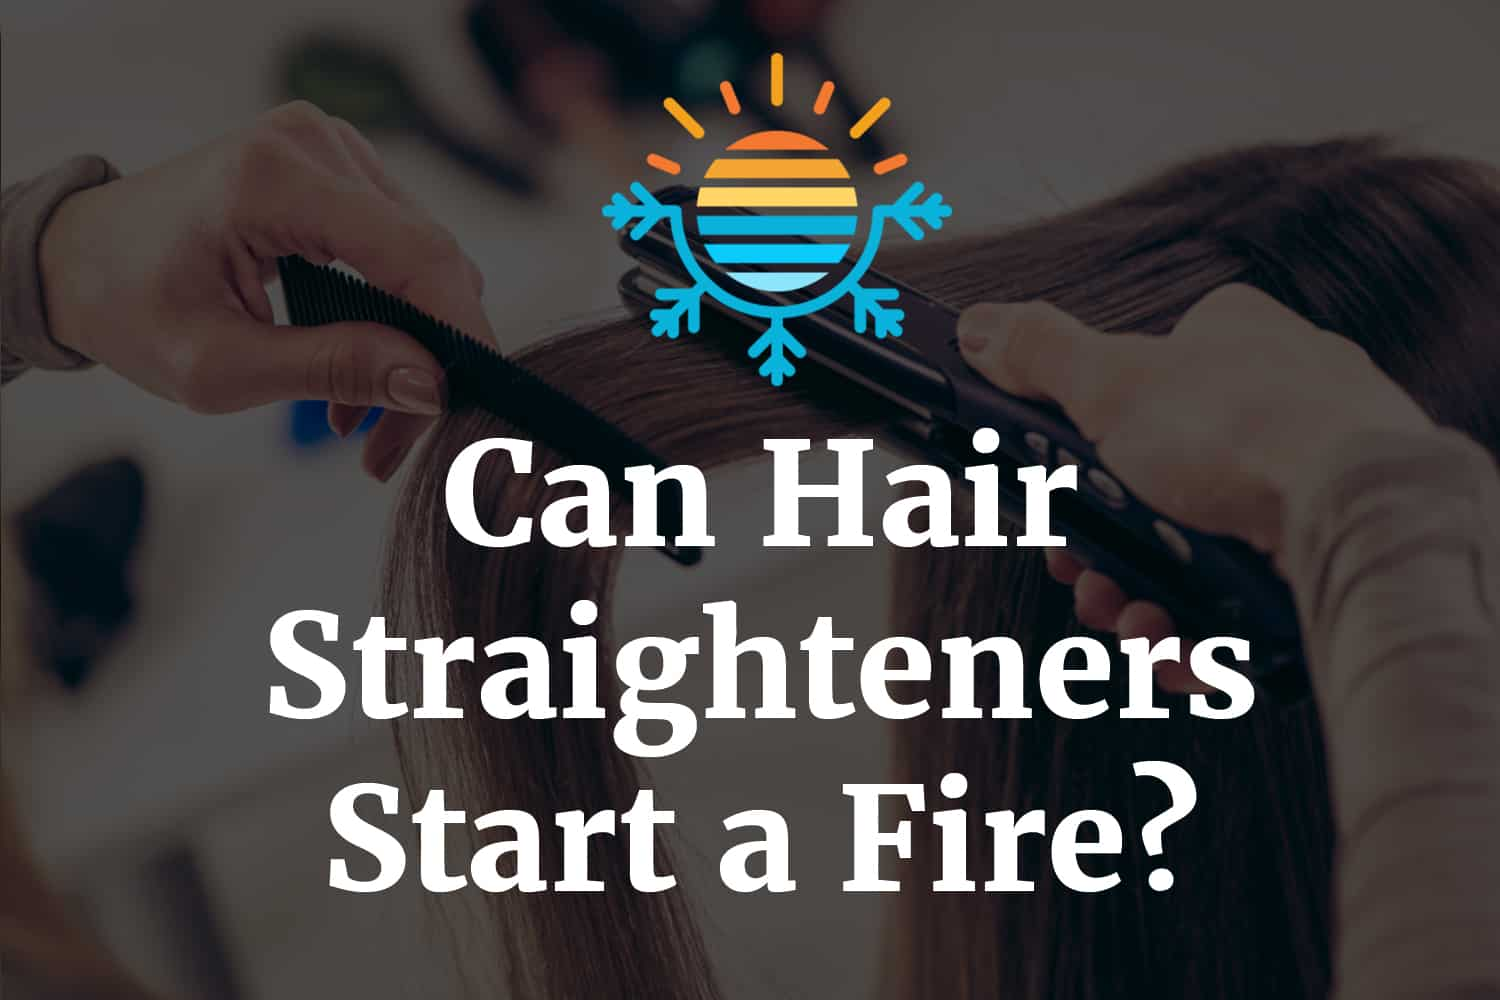 Can hair straighteners start a fire